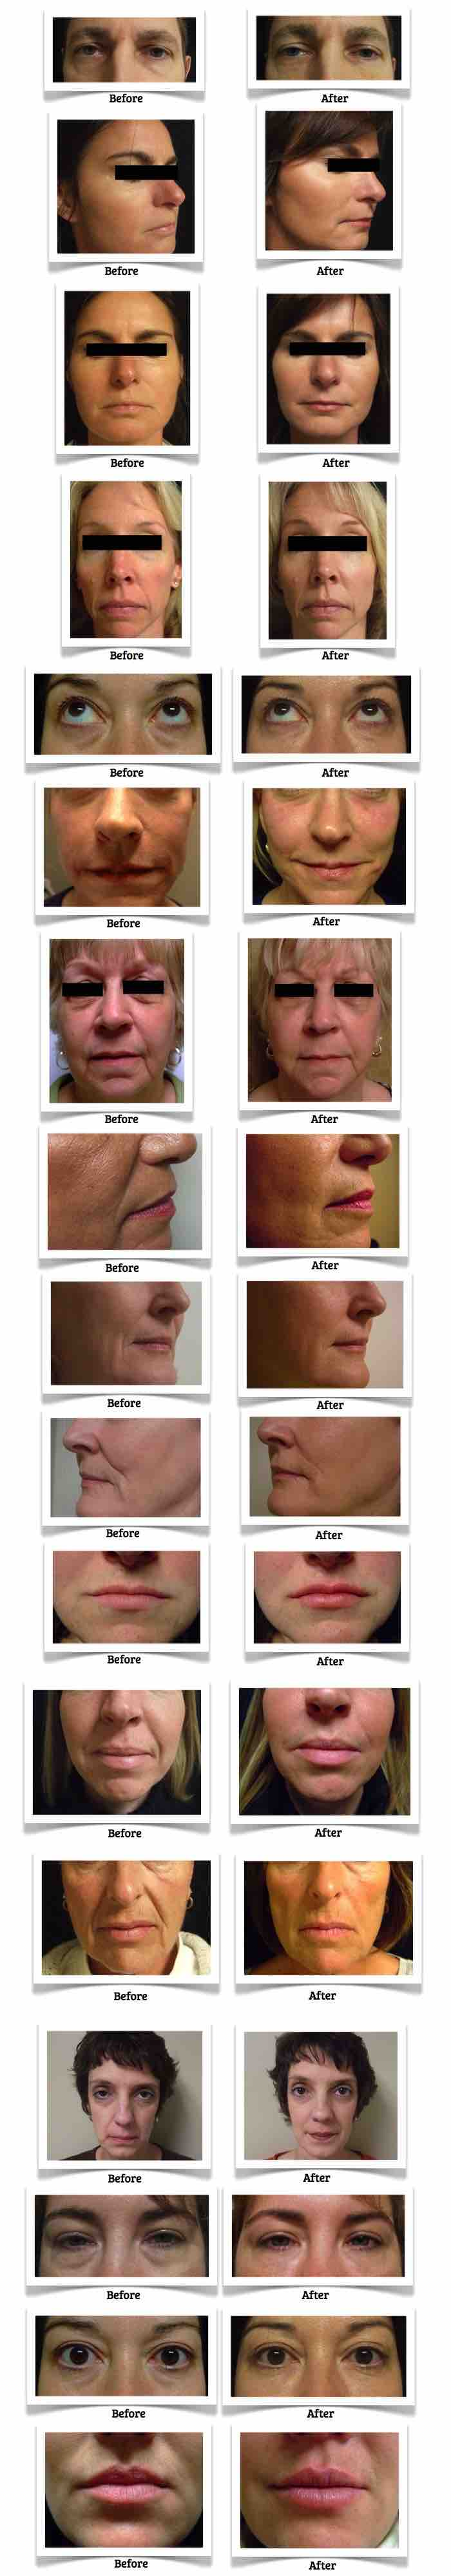 Refine MD aesthetic medical spa serving Menasha, Appleton, and the Northeast Wisconsin area shows the results in the before and after images of clients given Juvederm XC dermal filler.